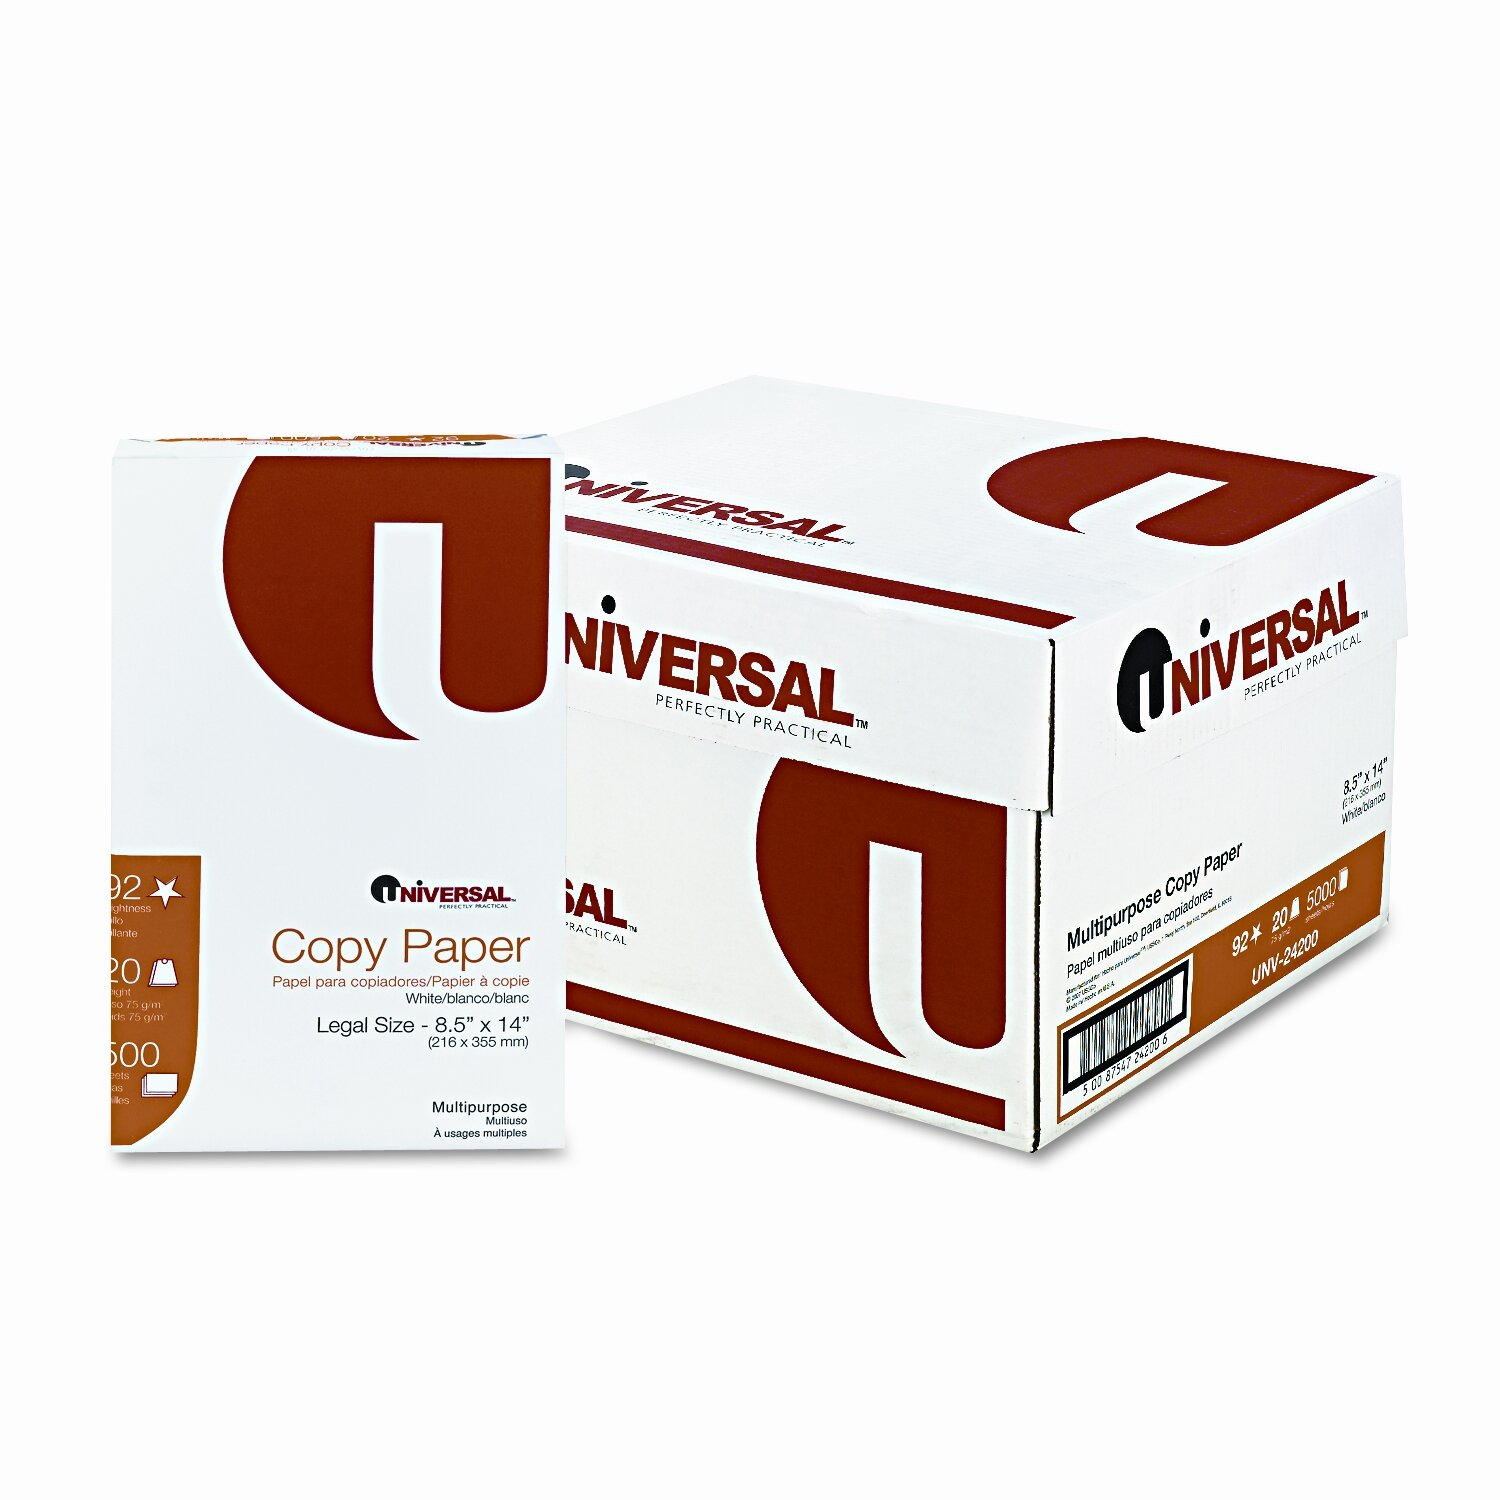 universal copy paper Business-weight, colored, recycled office paper colors recycled colored paper is ideal for coding documents or for adding pizzazz to flyers and promotional materials.